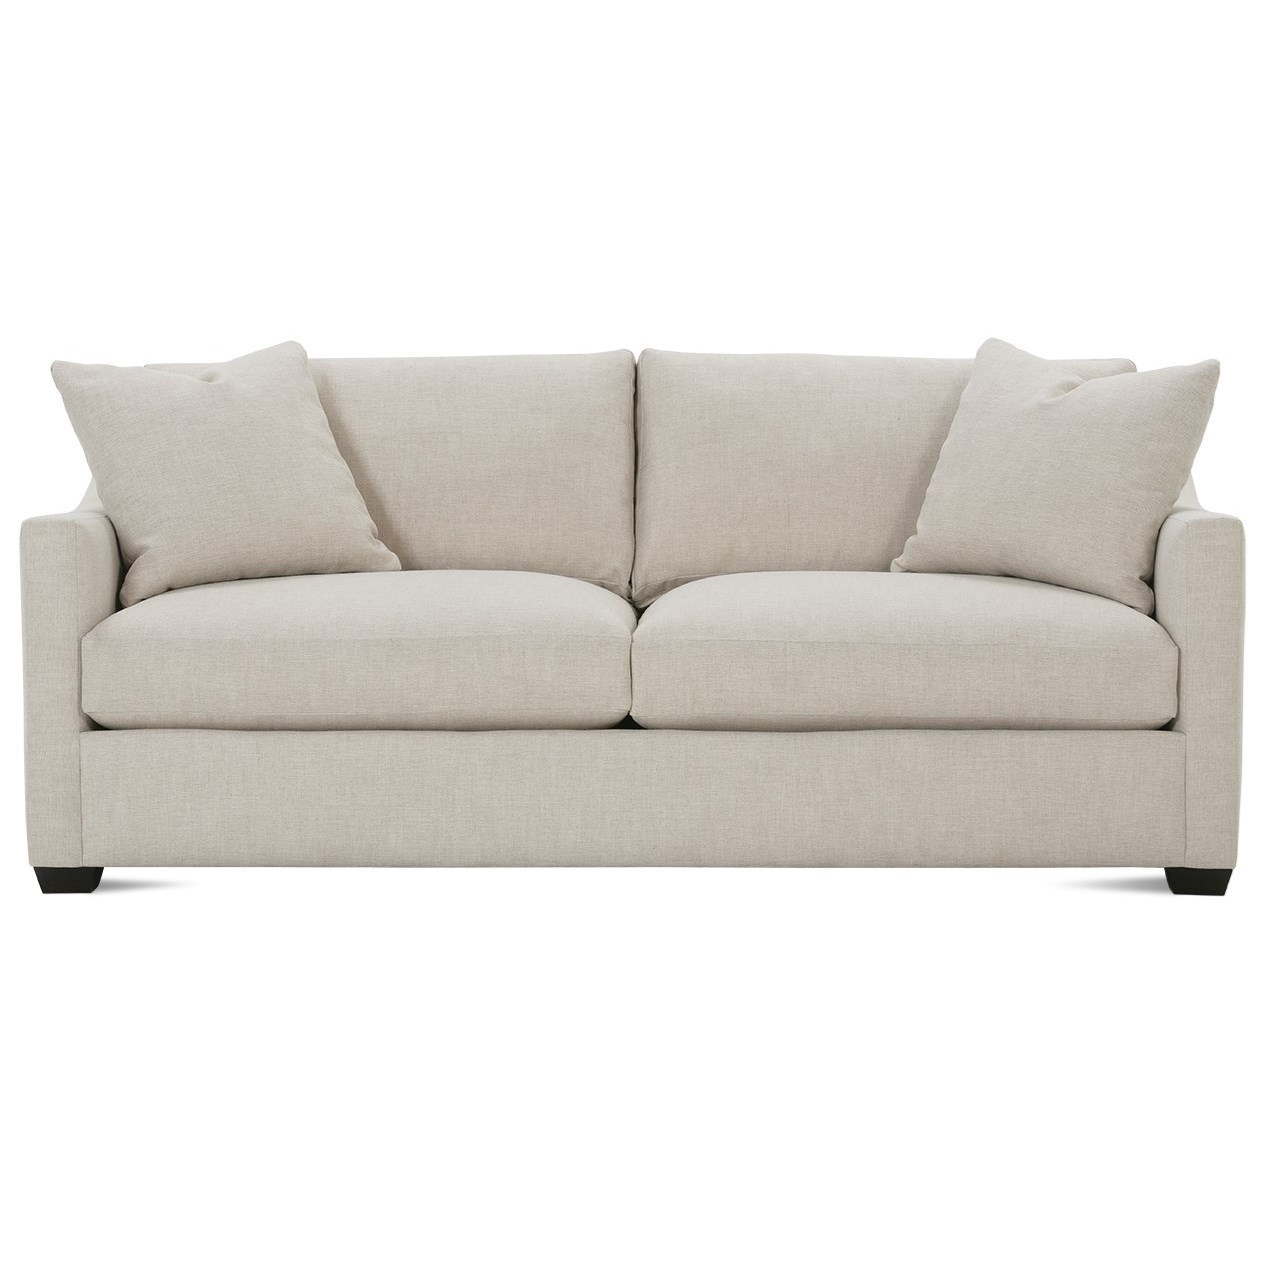 Bradford Sofa by Rowe at Steger's Furniture